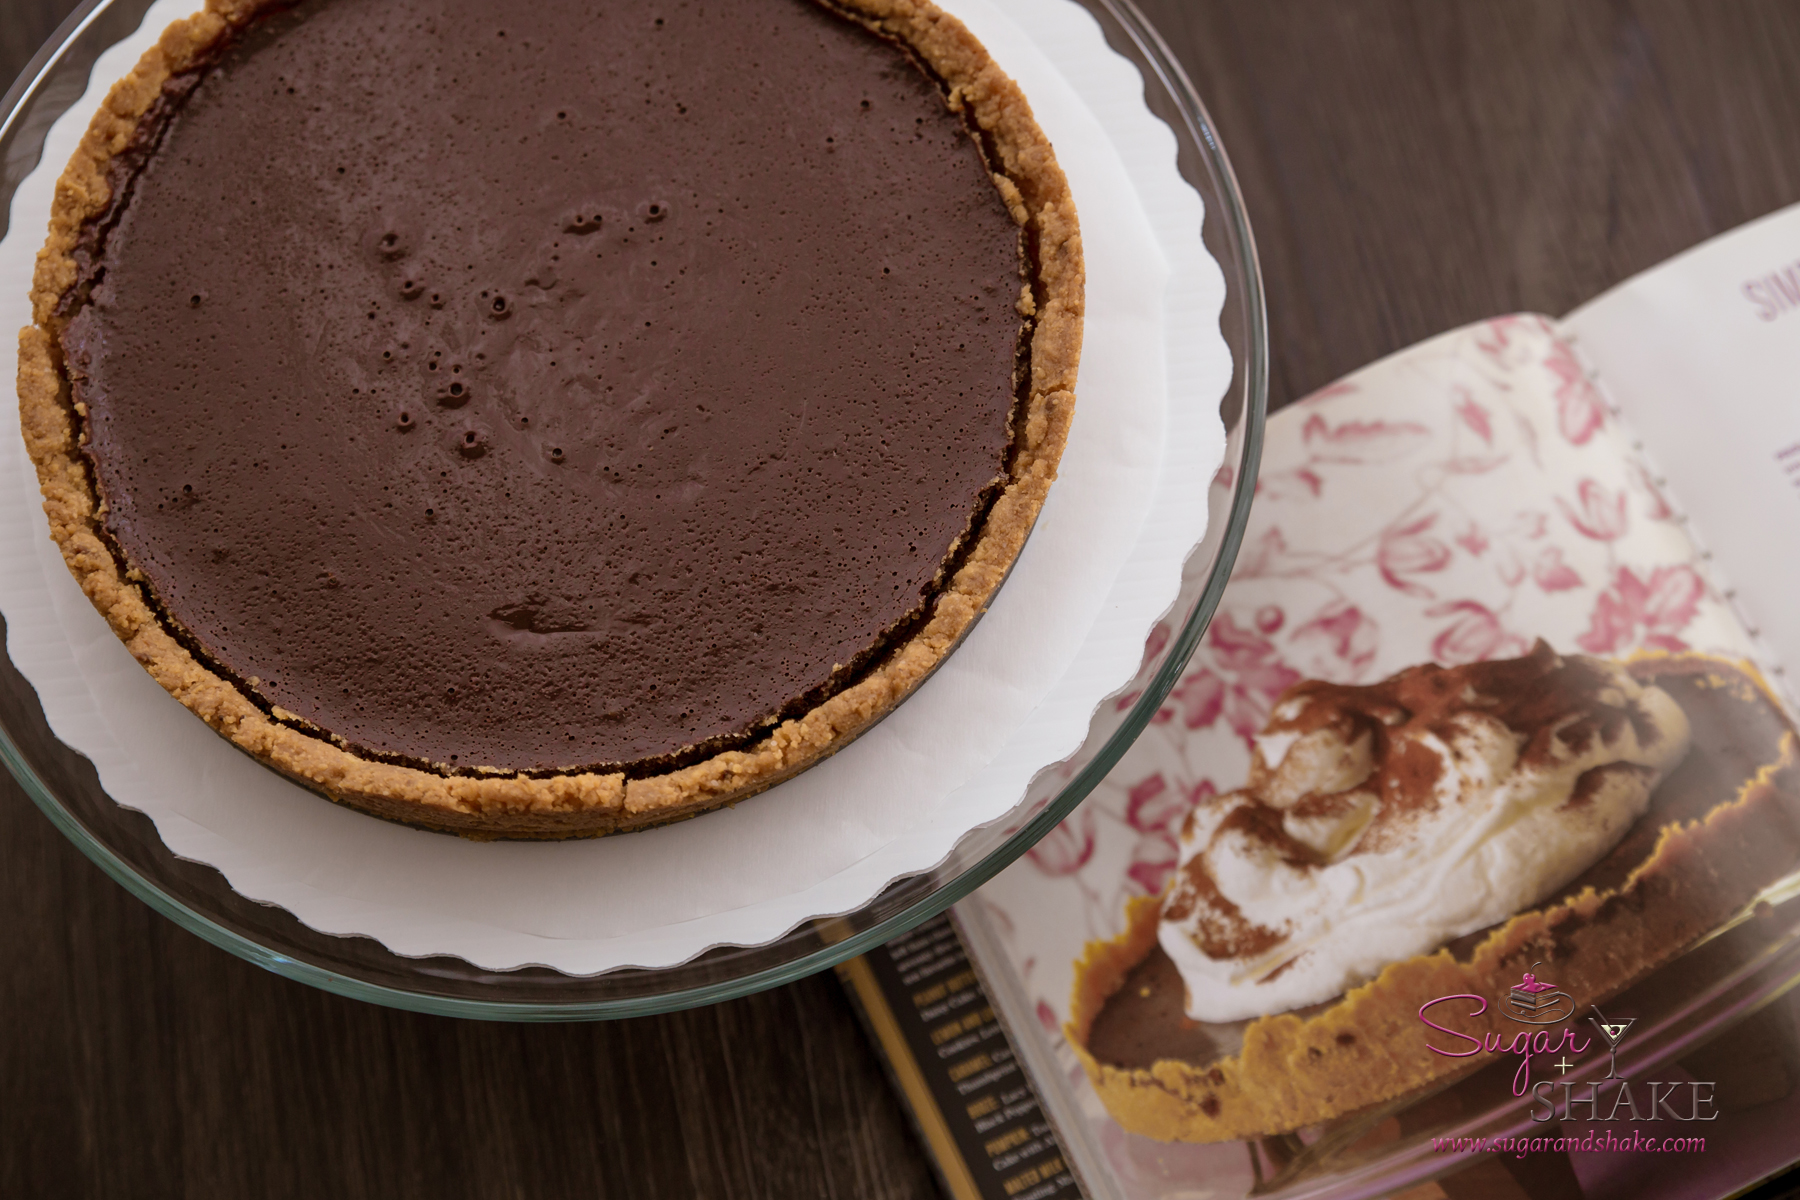 Baked NYC's Chocolate Whiskey Tart. © 2015 Sugar + Shake